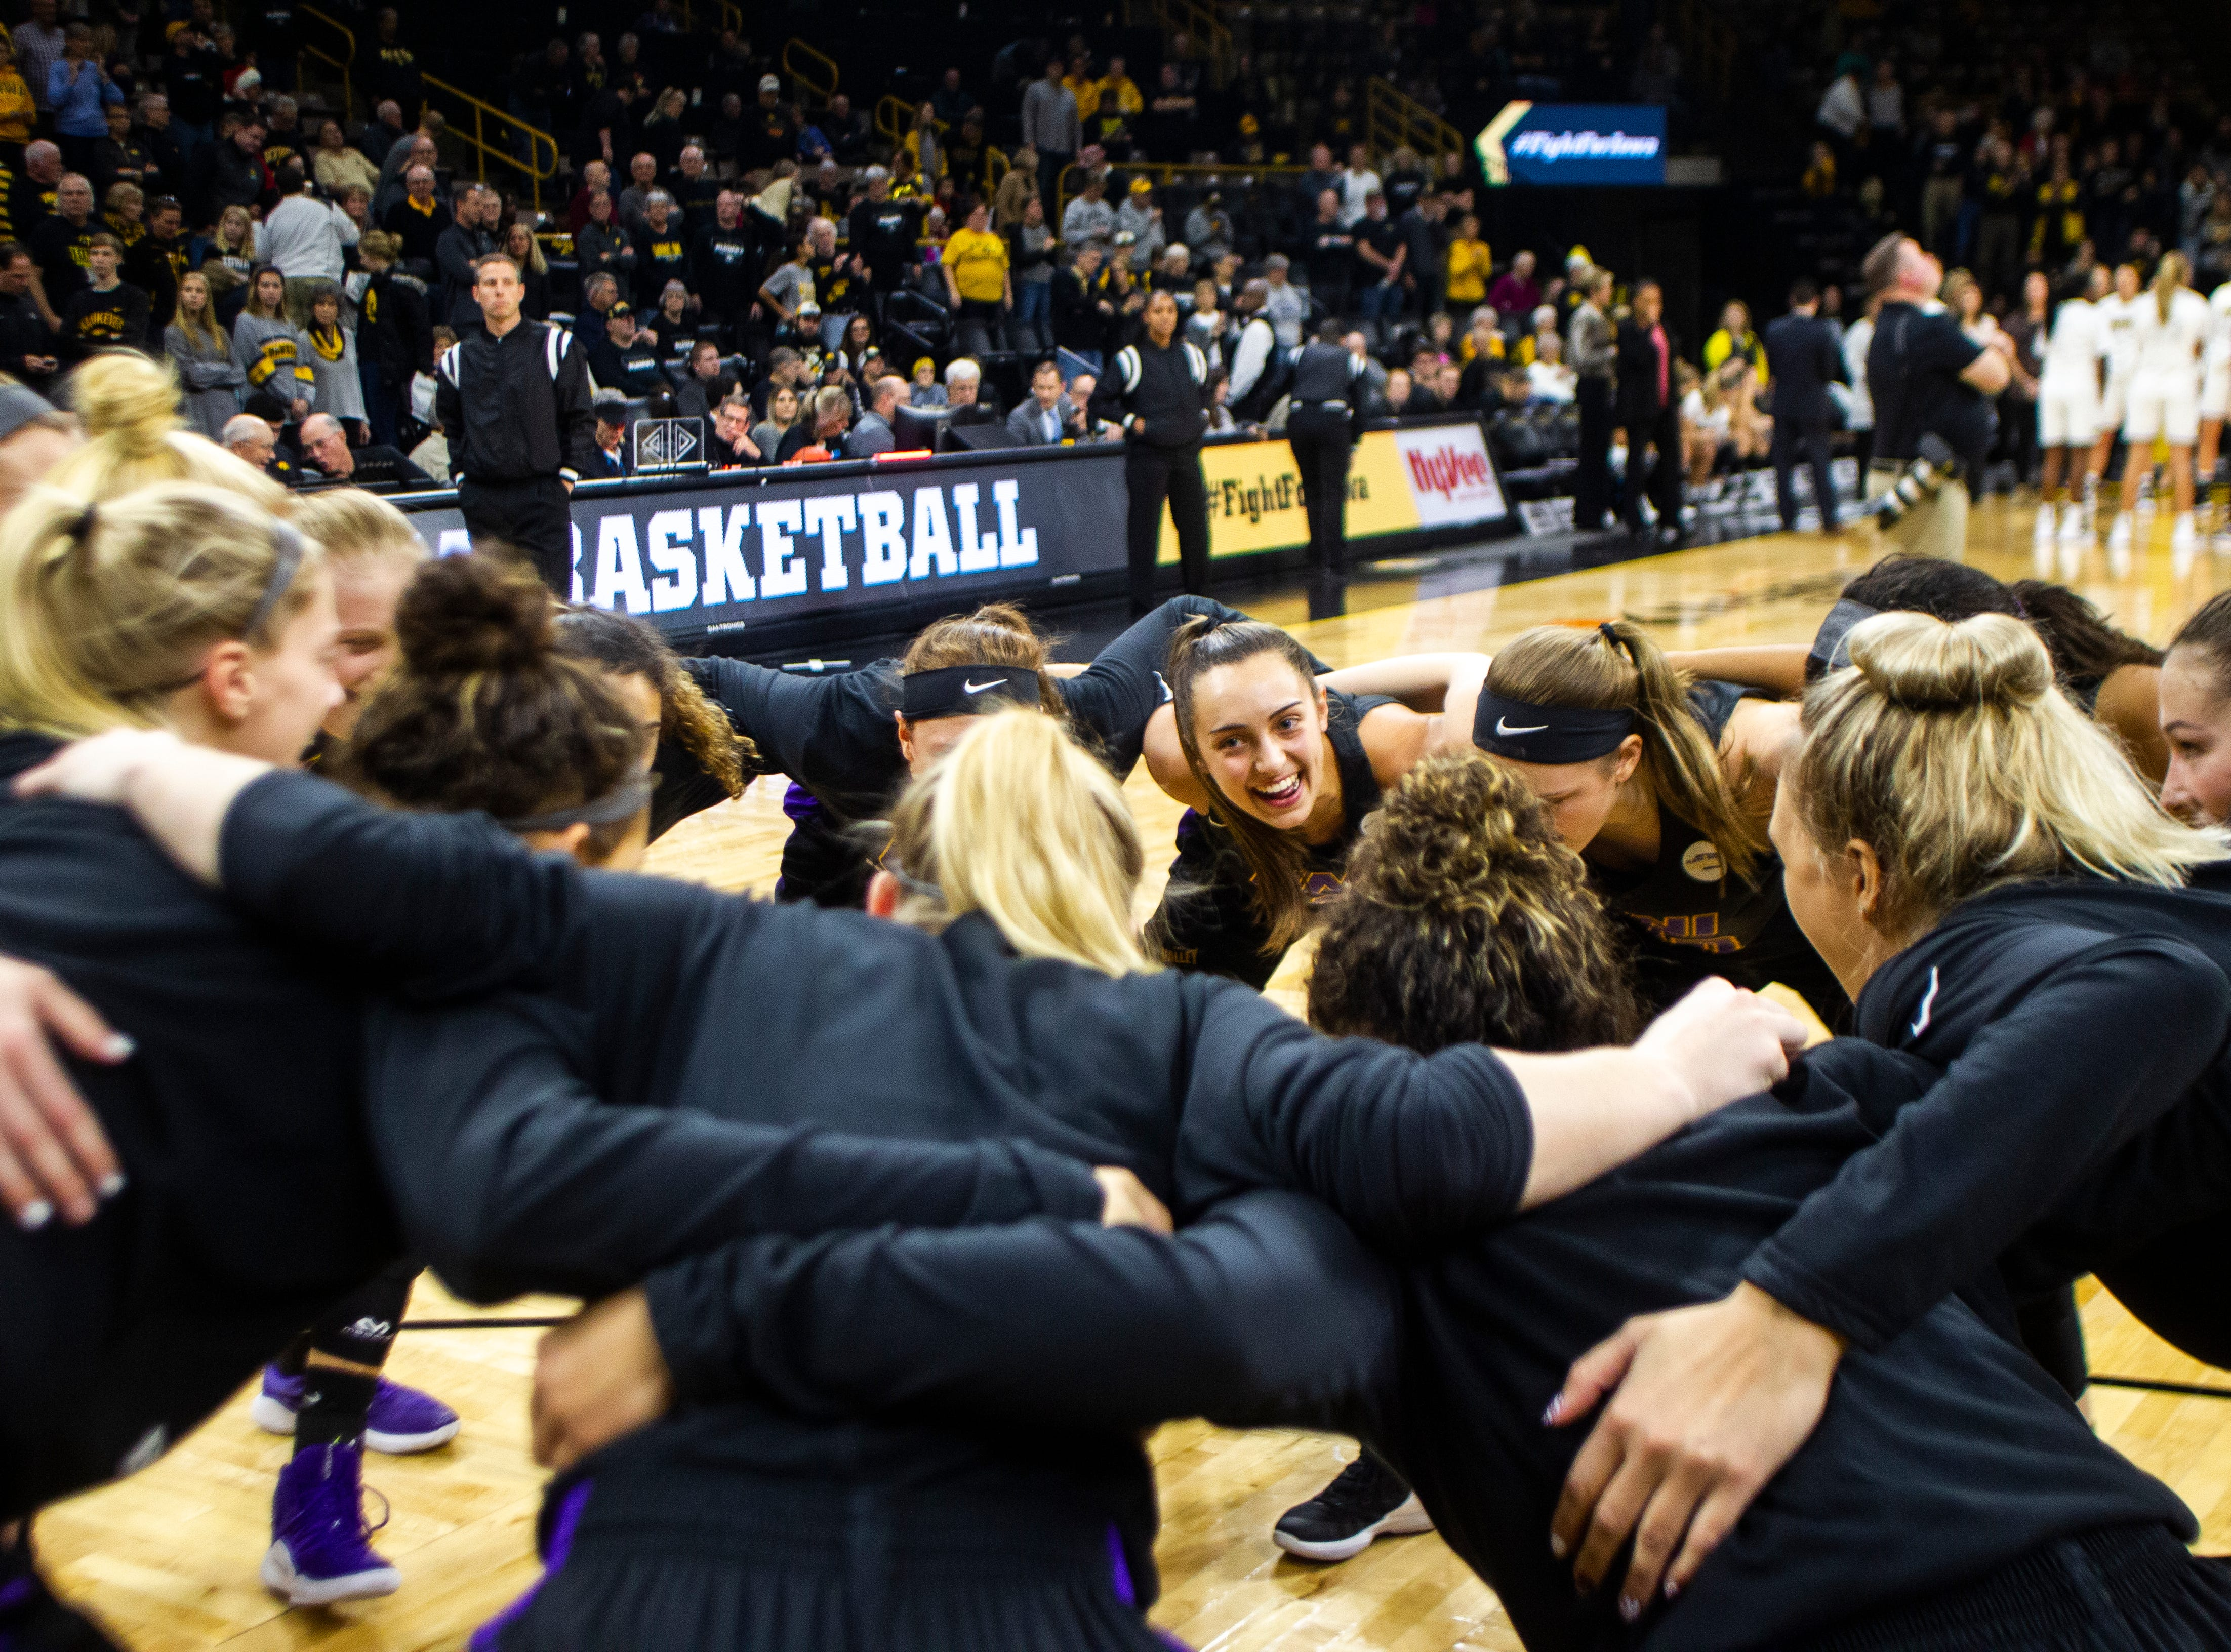 Northern Iowa guard Karli Rucker (3) huddles with teammates before a NCAA women's basketball game on Sunday, Dec. 16, 2018, at Carver-Hawkeye Arena in Iowa City.